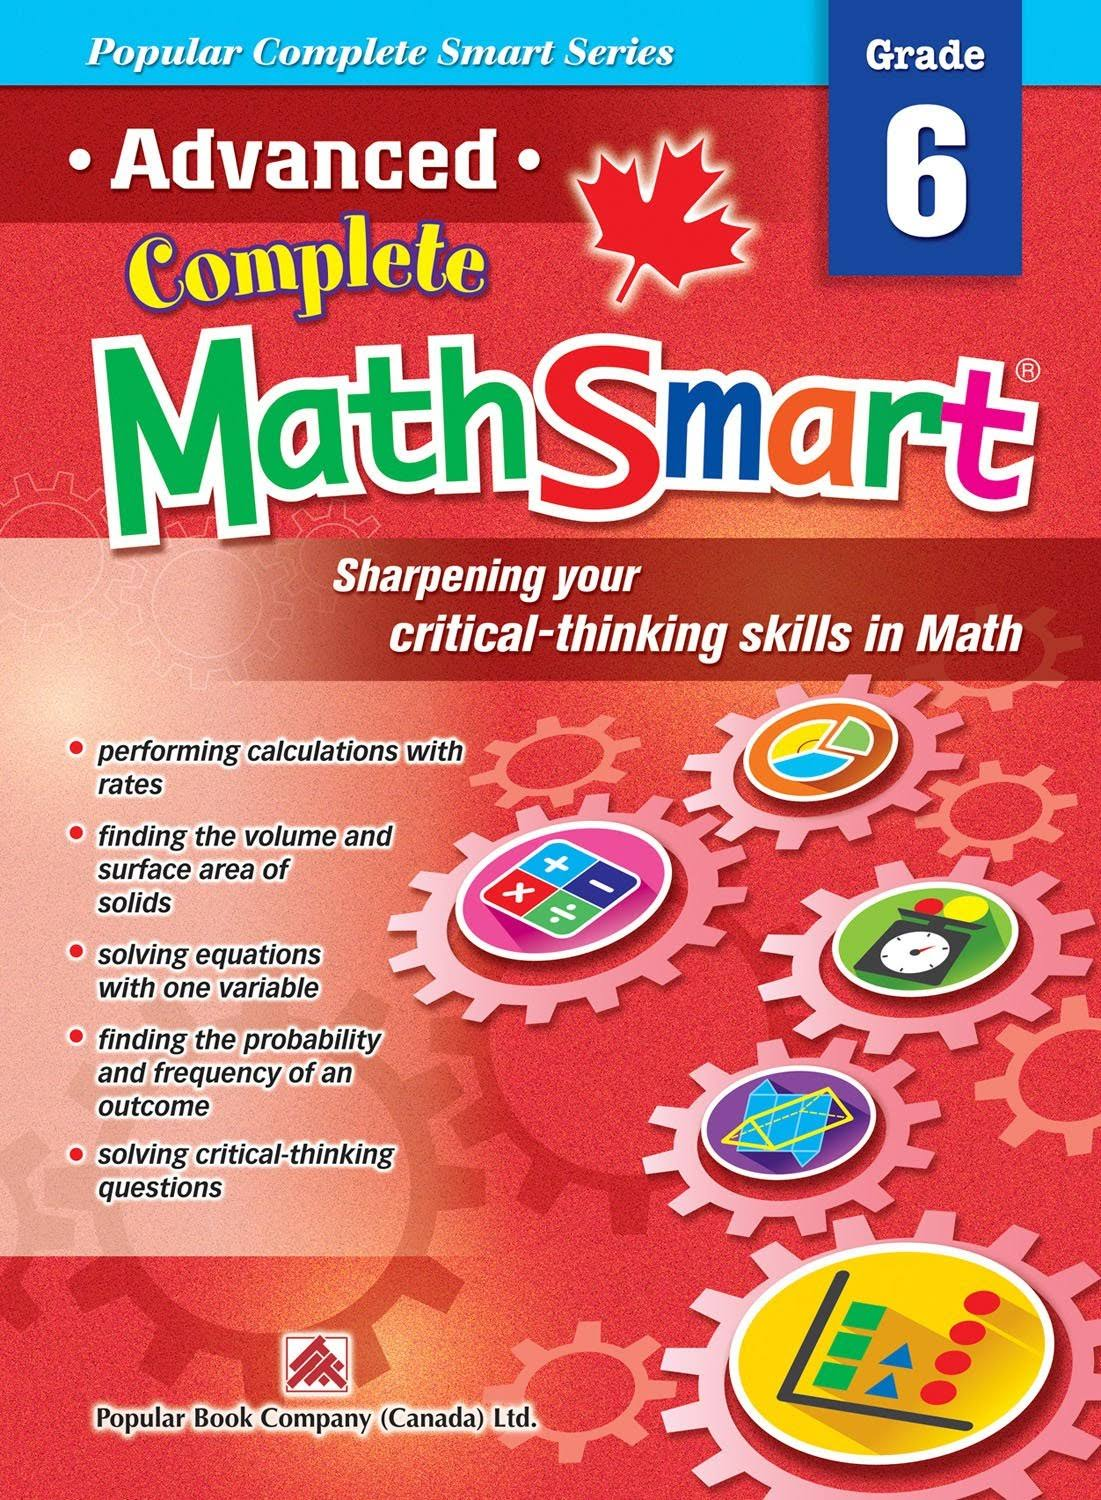 Popular Complete Smart Series: Advanced Complete MathSmart Grade 6 [Book]